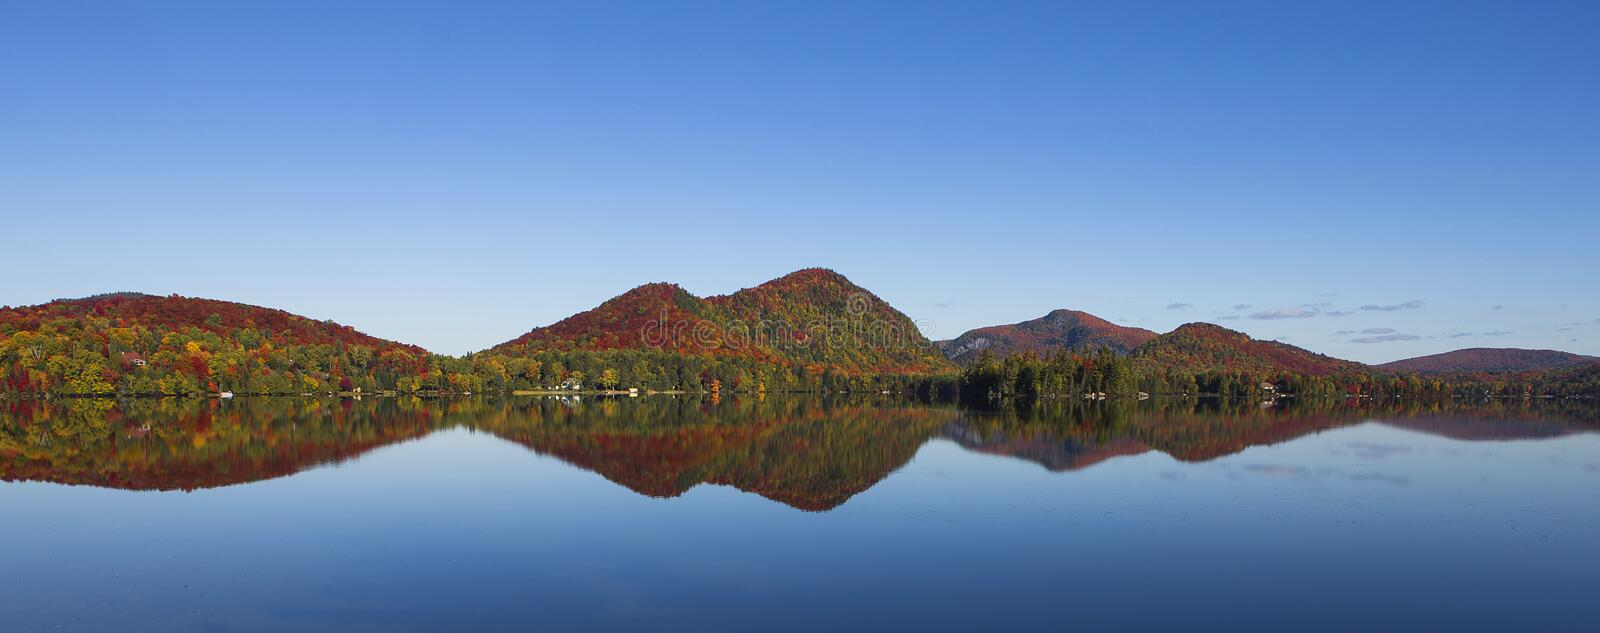 Lac-Superieur, Mont-tremblant, Quebec, Canada. View of the Lac-Superieur, in Laurentides, Mont-tremblant, Quebec, Canada, during indian summer royalty free stock images